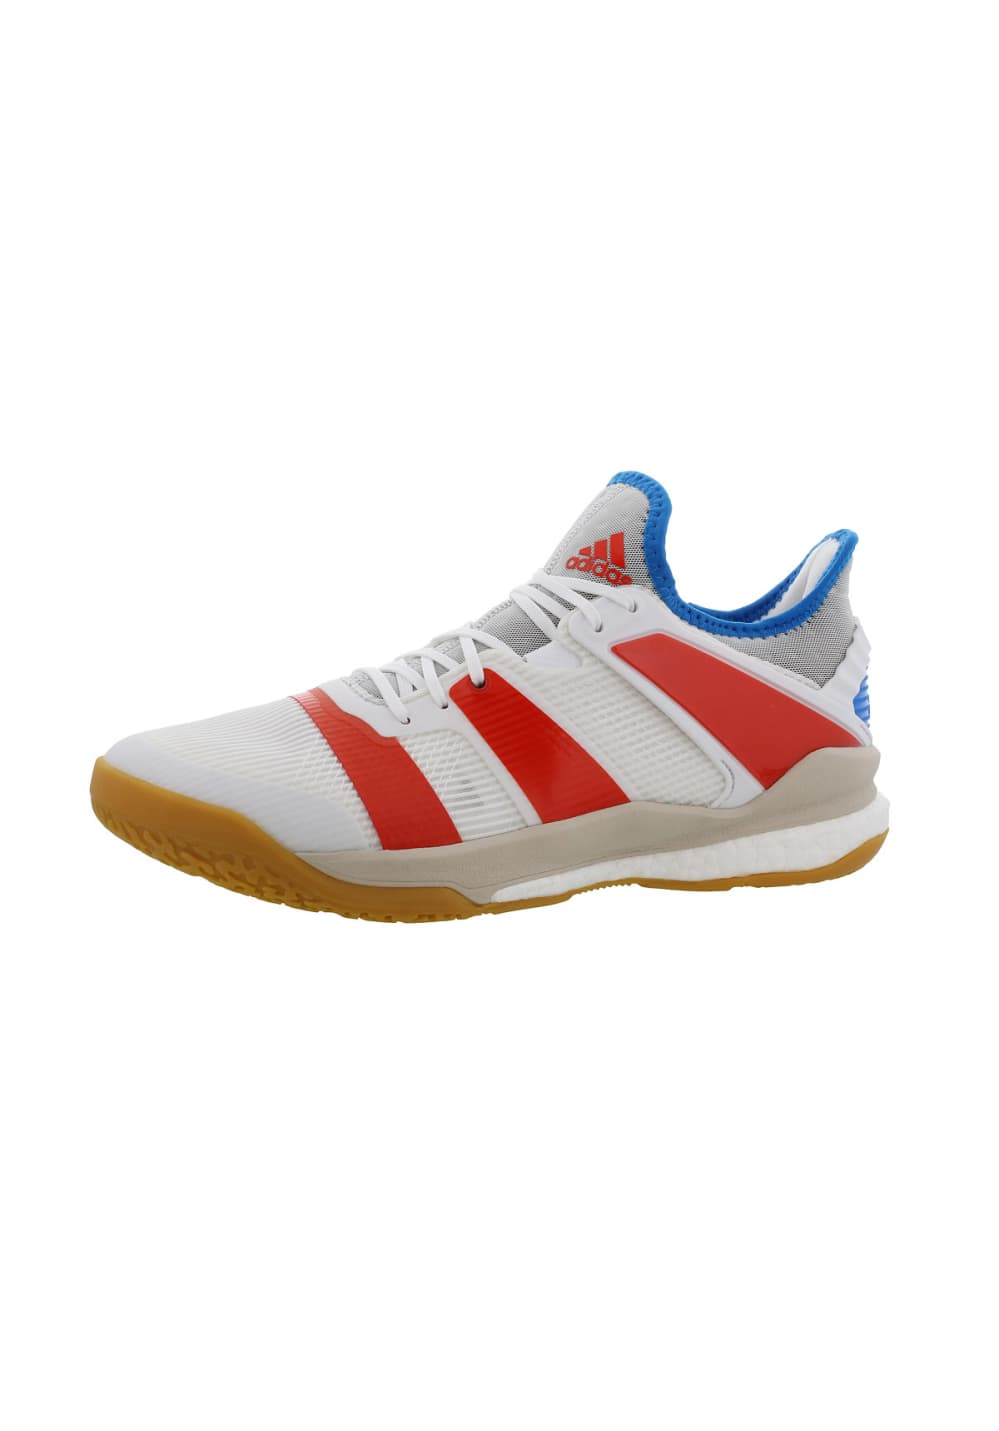 new product 193a8 f88a3 adidas Stabil X - Handball shoes for Men - White